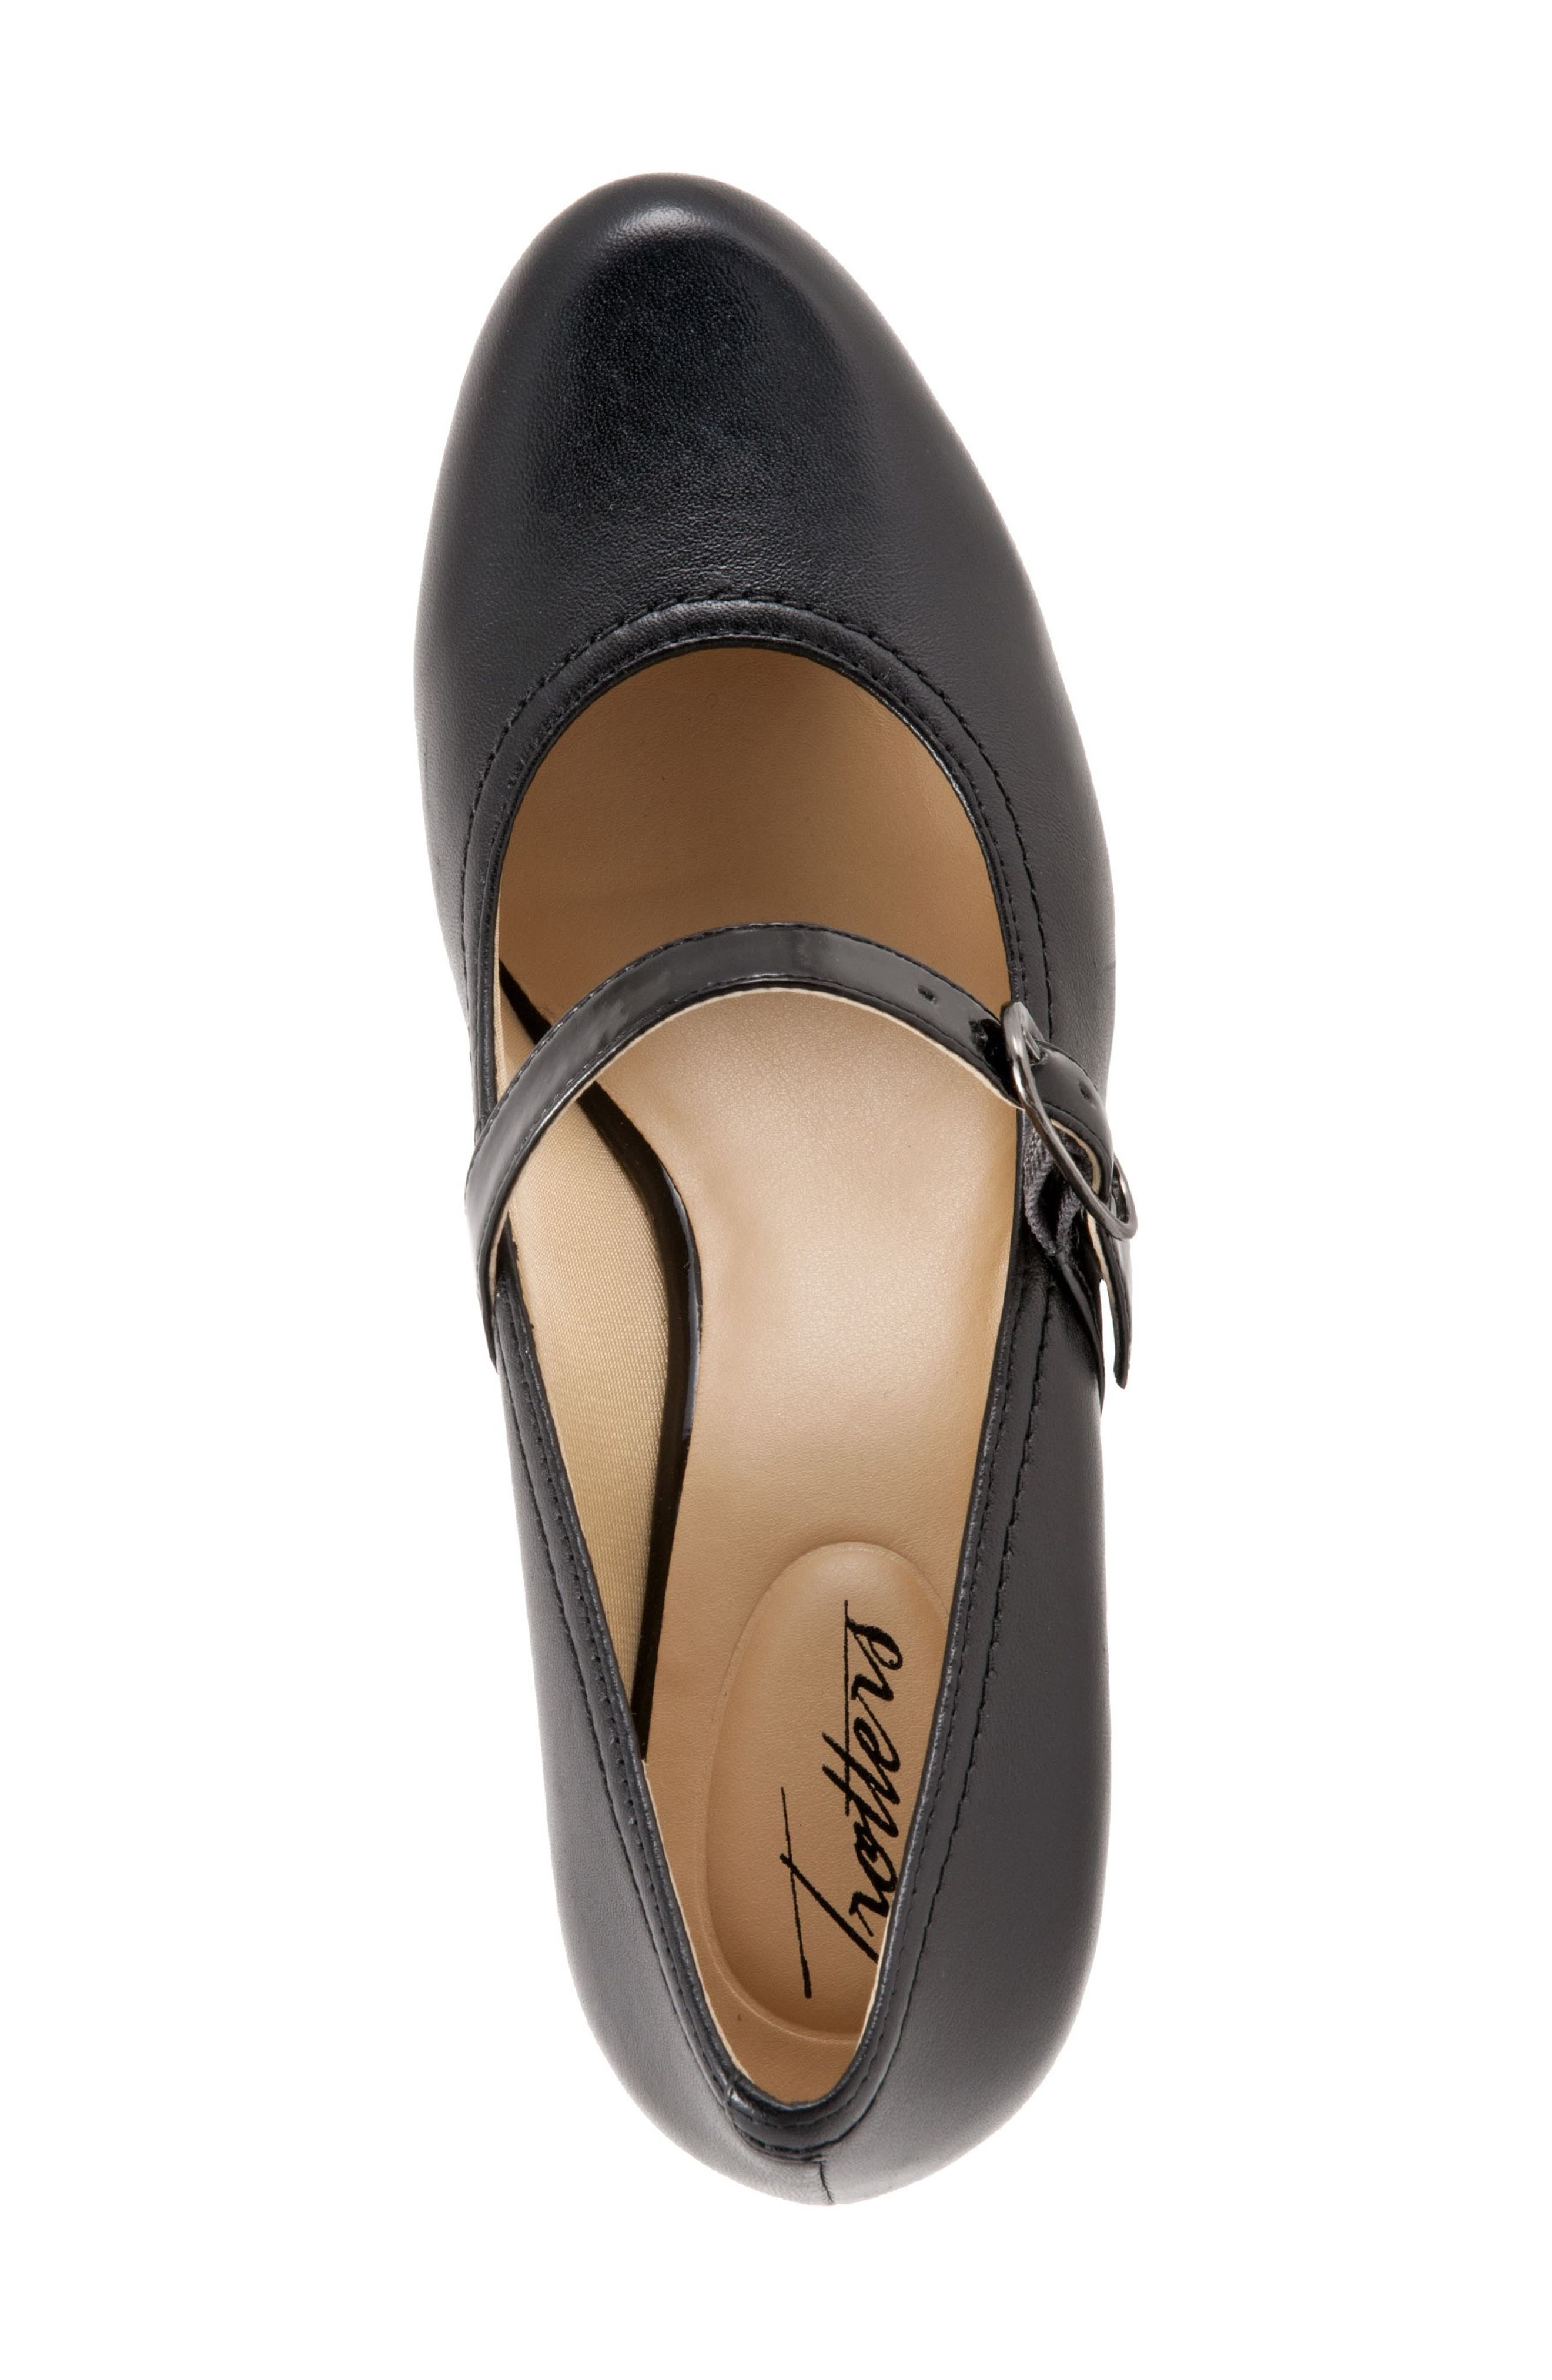 TROTTERS, 'Candice' Mary Jane Pump, Alternate thumbnail 2, color, BLACK LEATHER